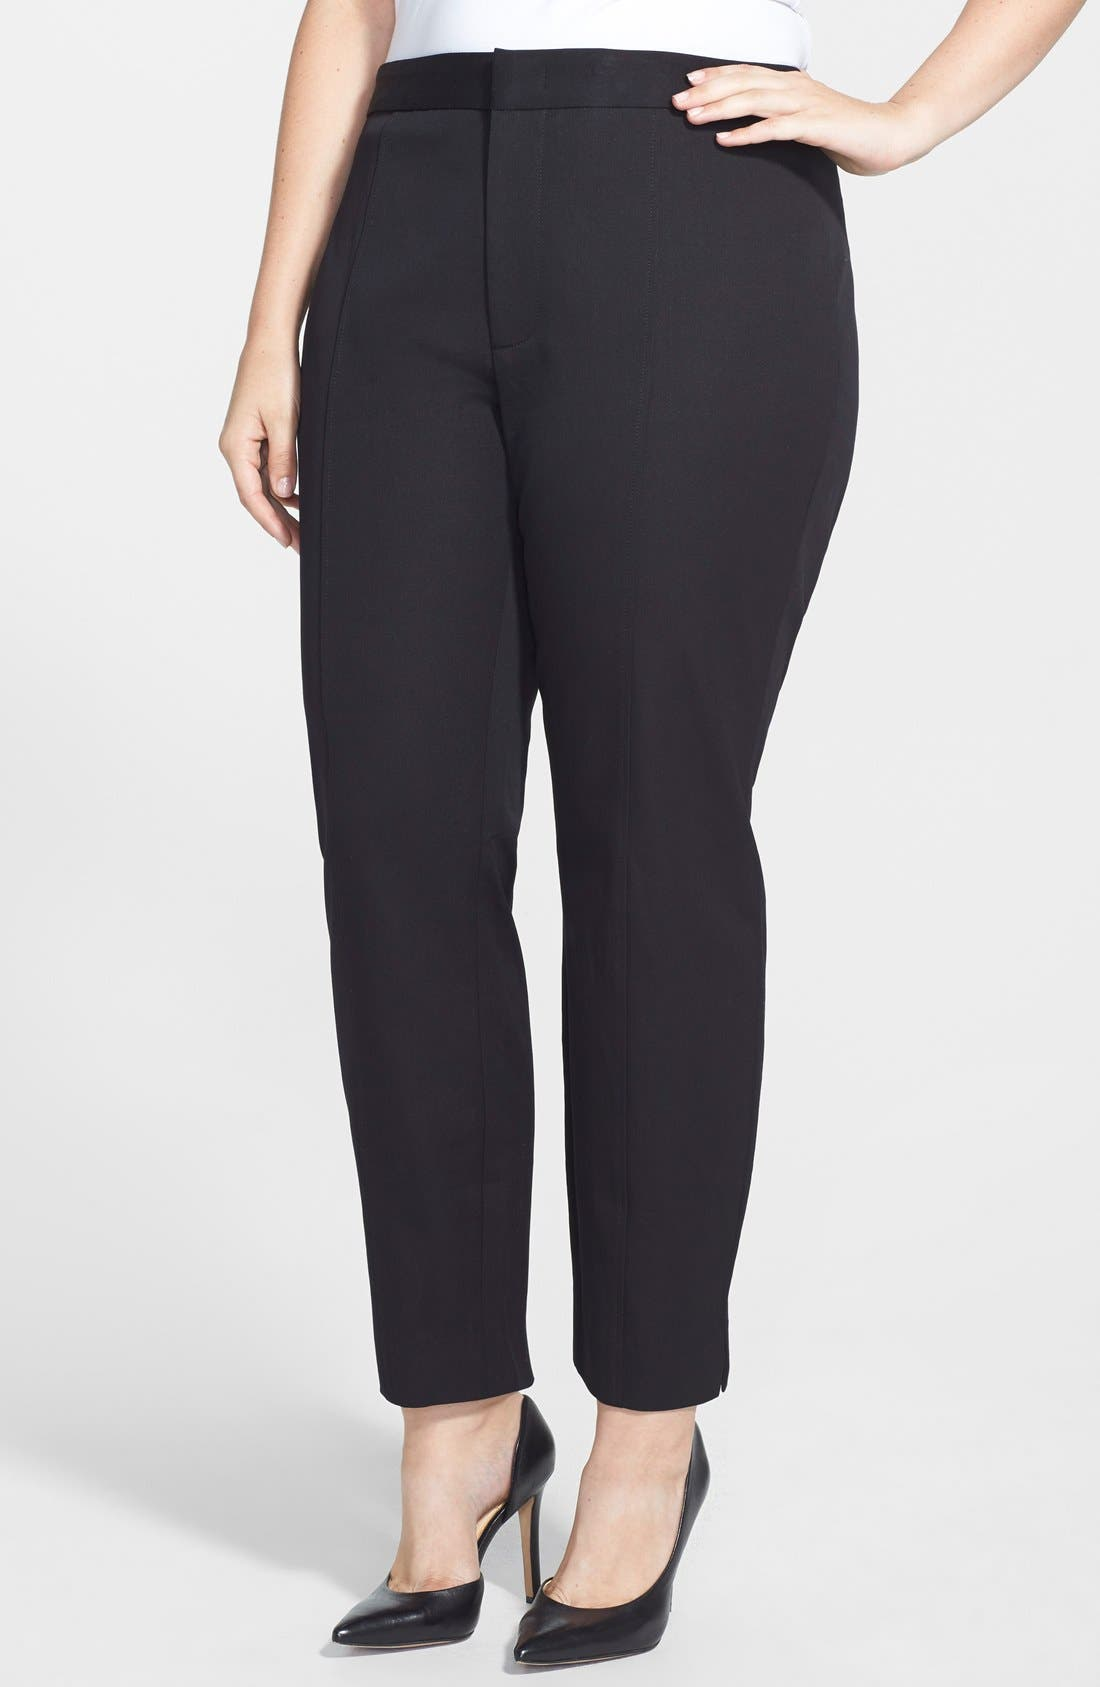 Main Image - NYDJ 'Fashion' Two-Way Stretch Slit Ankle Pants (Plus Size)